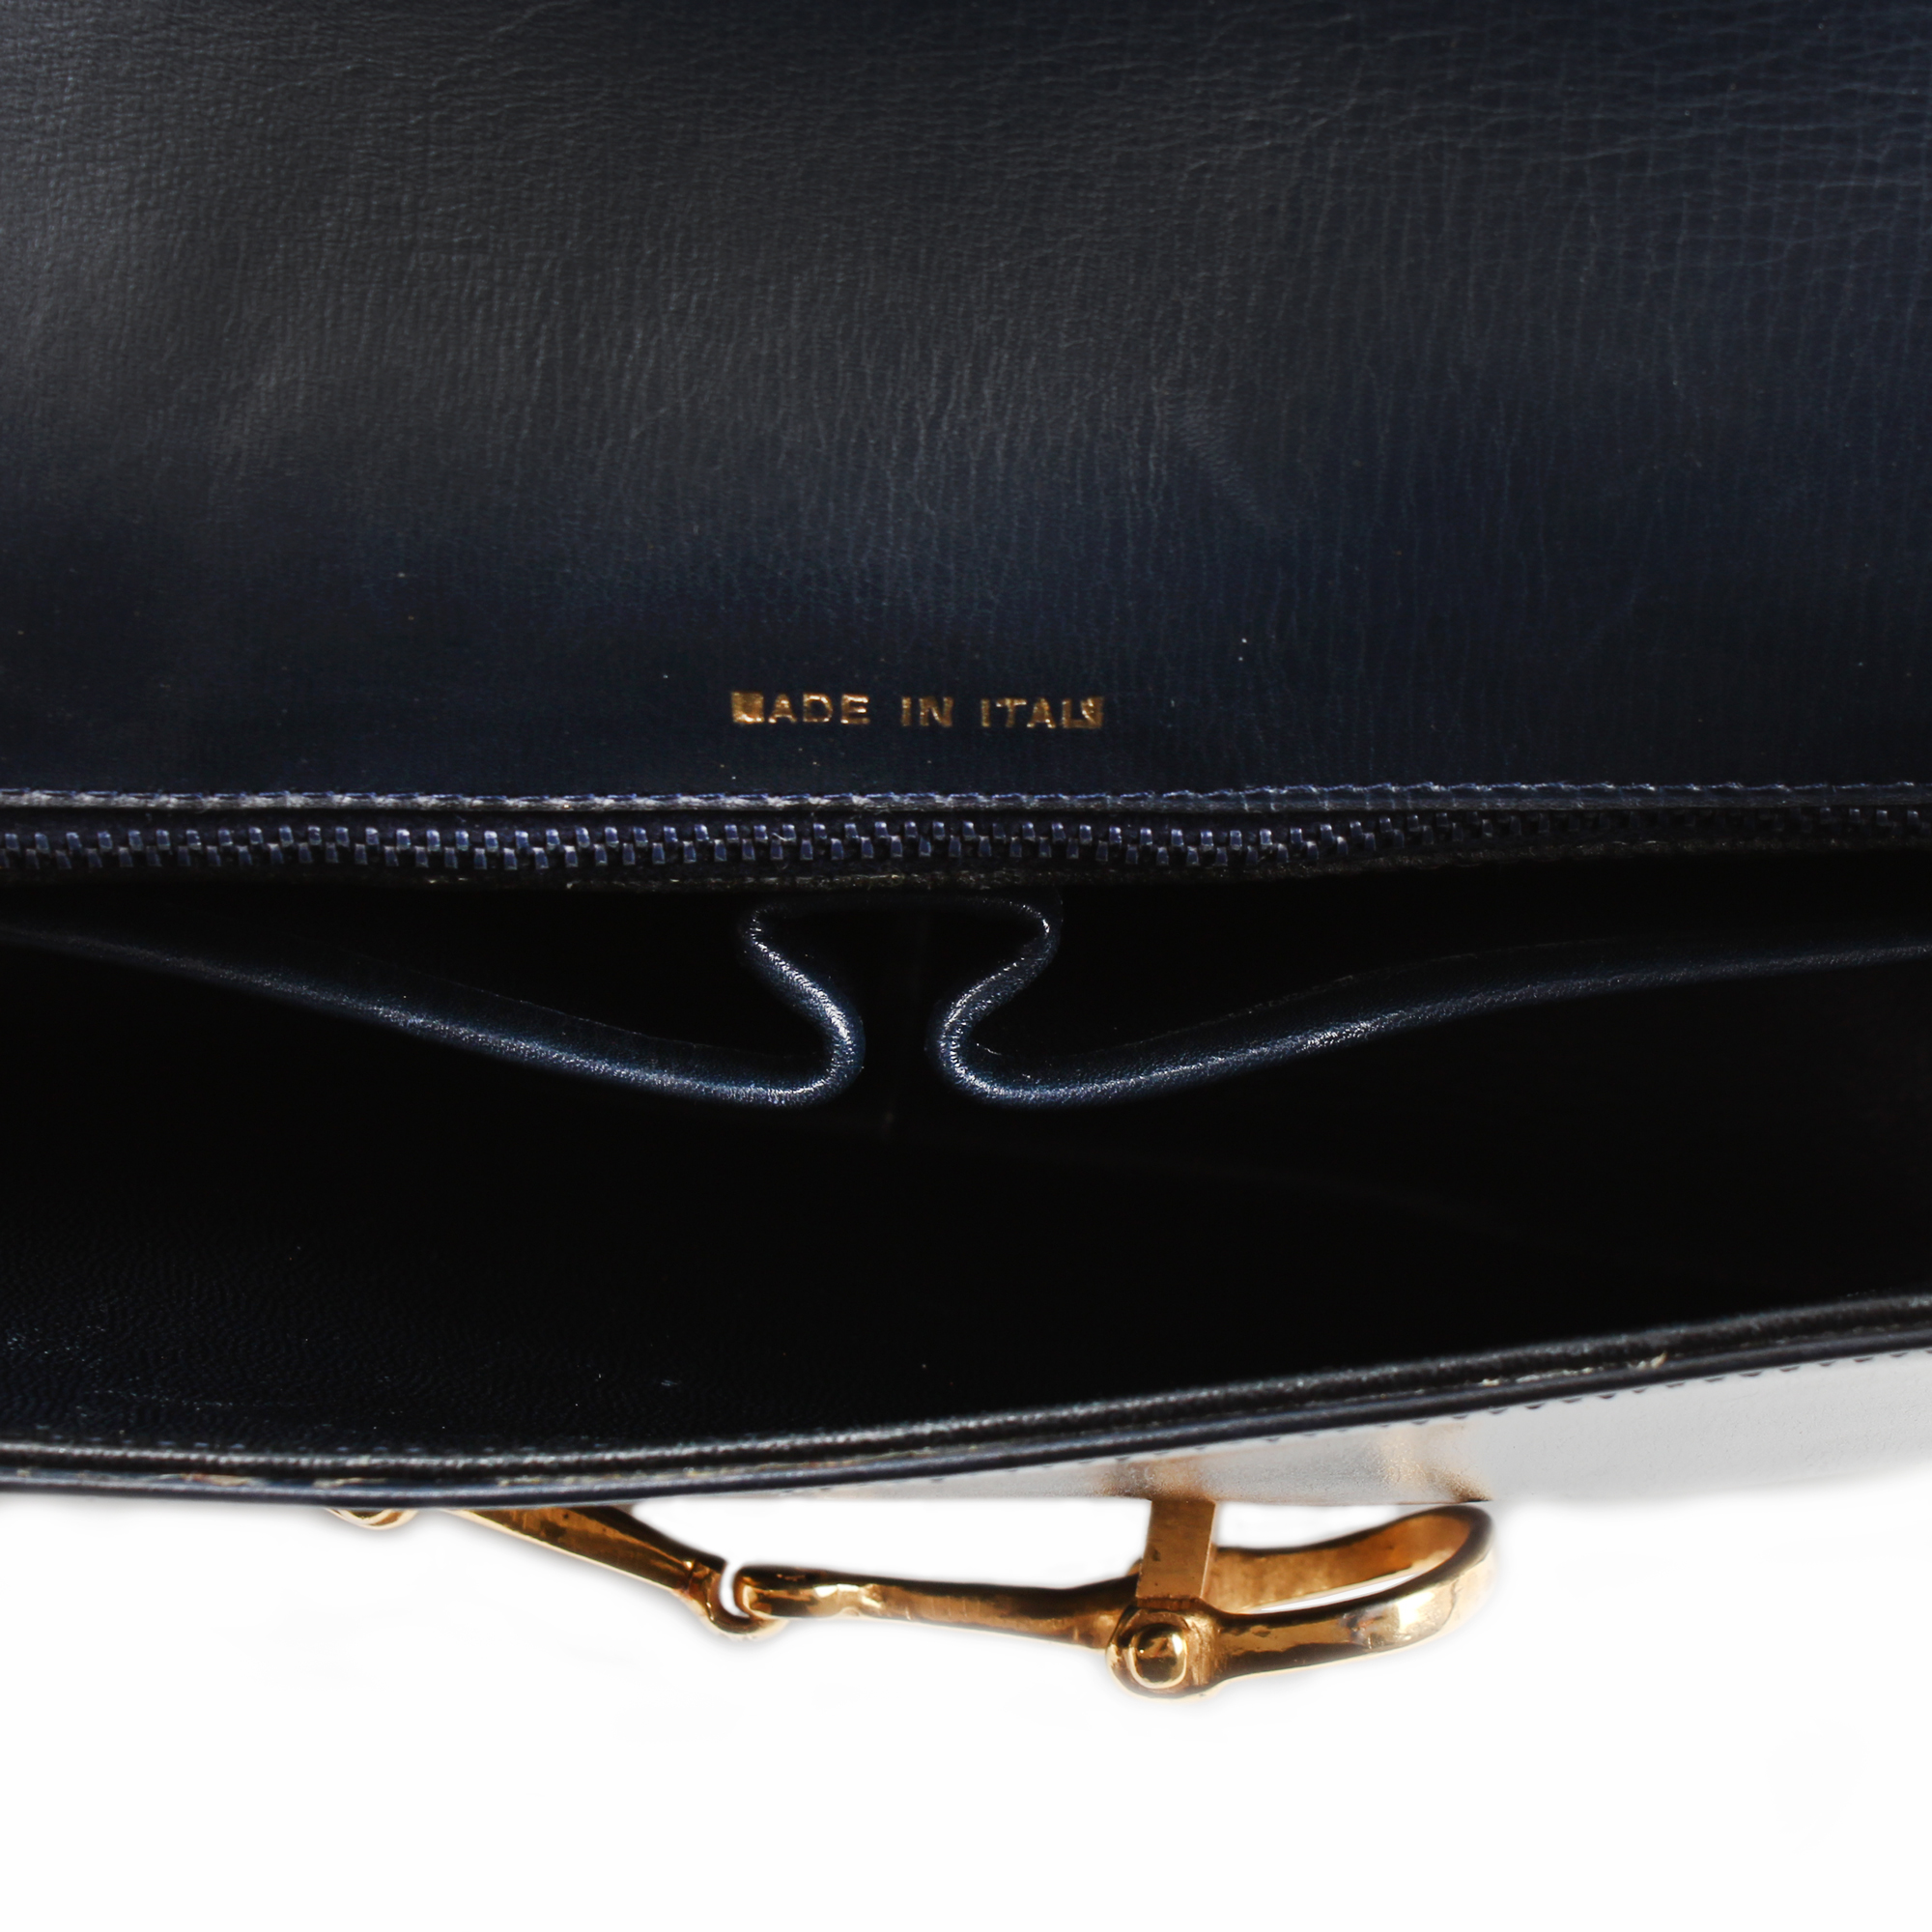 Interior image from celine vintage box shoulder bag